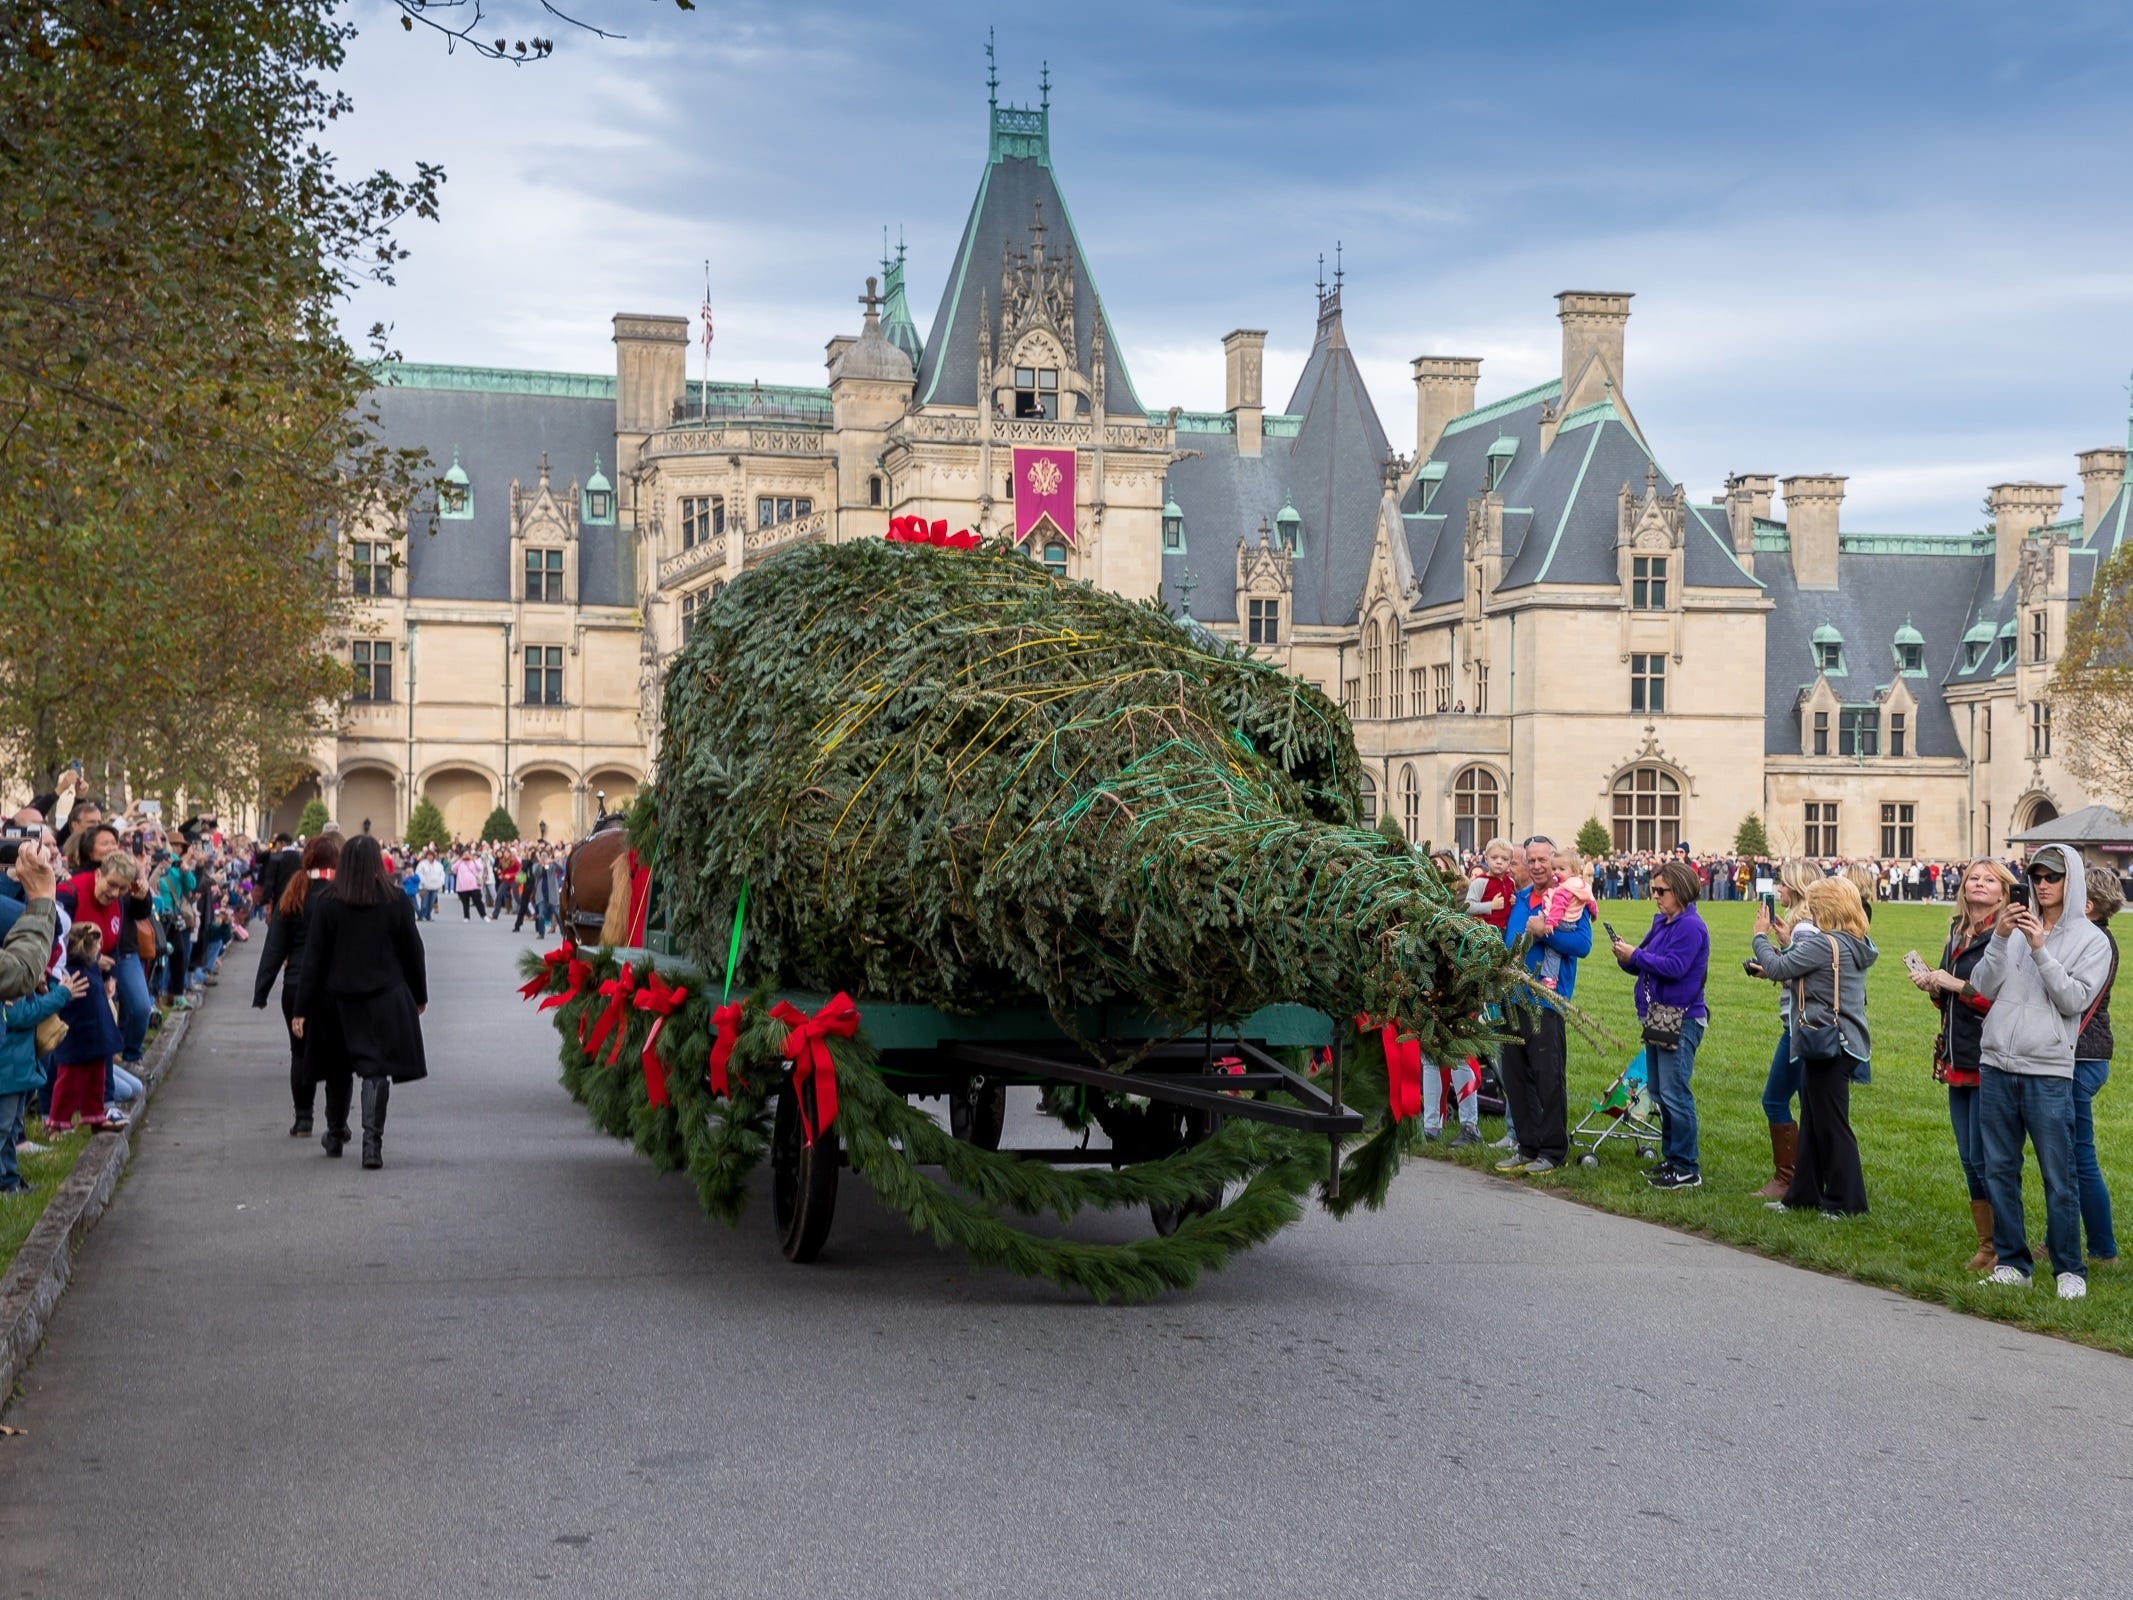 In North Carolina, the Fraser is also the display tree at Biltmore Estate, one of the state's top attractions. A holiday promotion is built around the arrival and display of the tree. This photo shows the arrival of the 2017 Fraser.